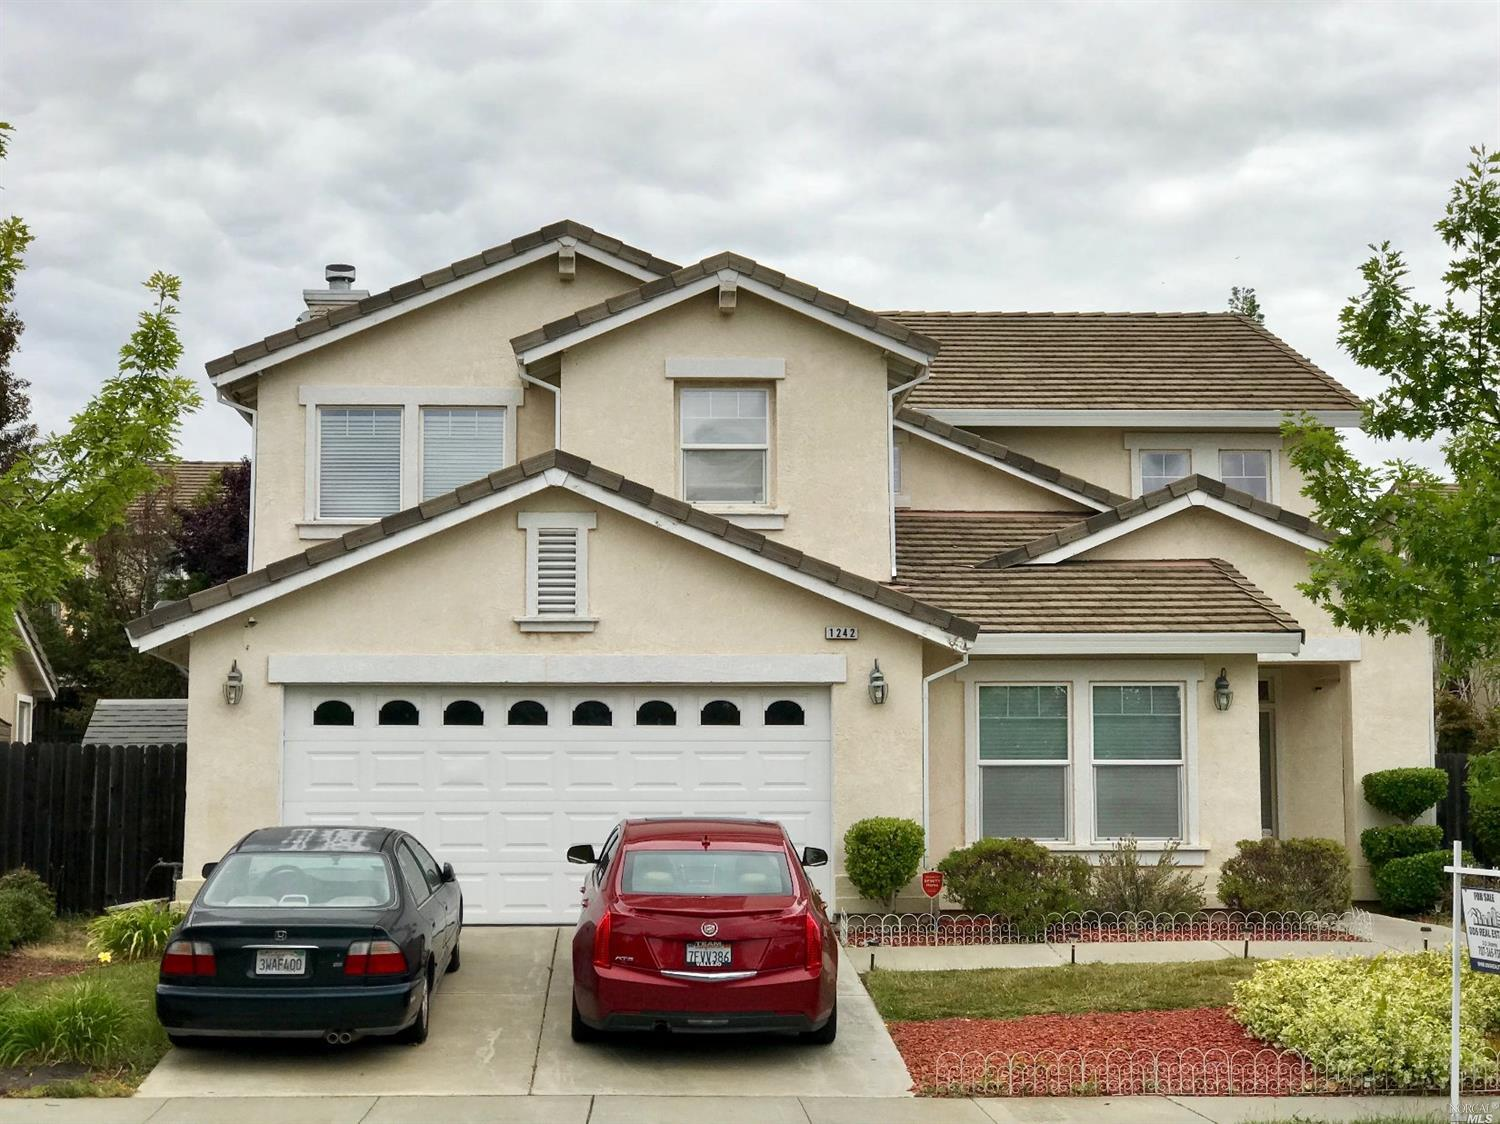 Former Model 5 bed 3 full bath home with Lake view, Spacious floor plan offers gourmet Din-in Kitche